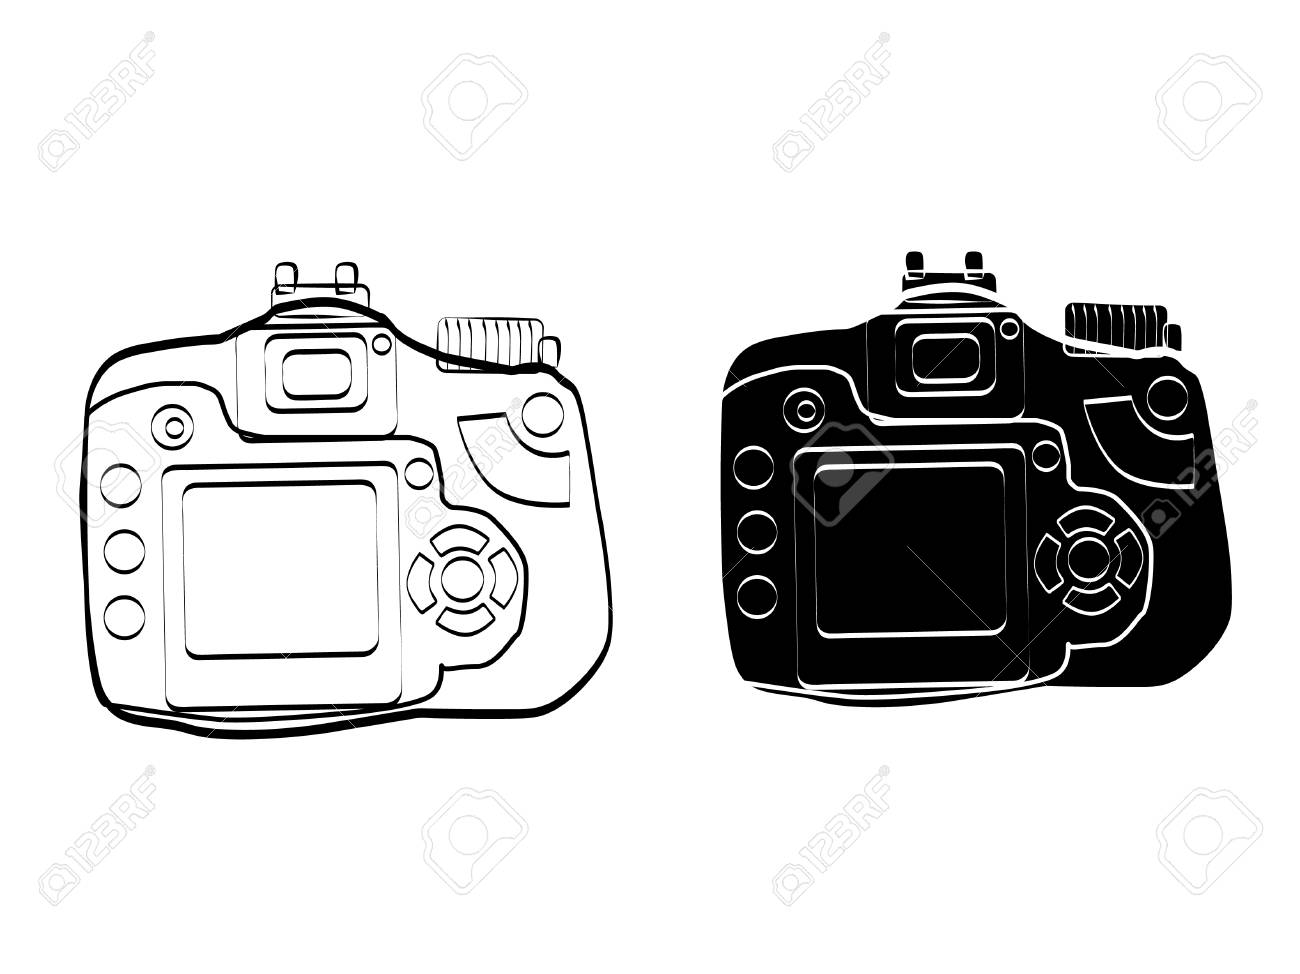 Camera Vintage Vector Free : Illustration black and white vintage camera icon vector art